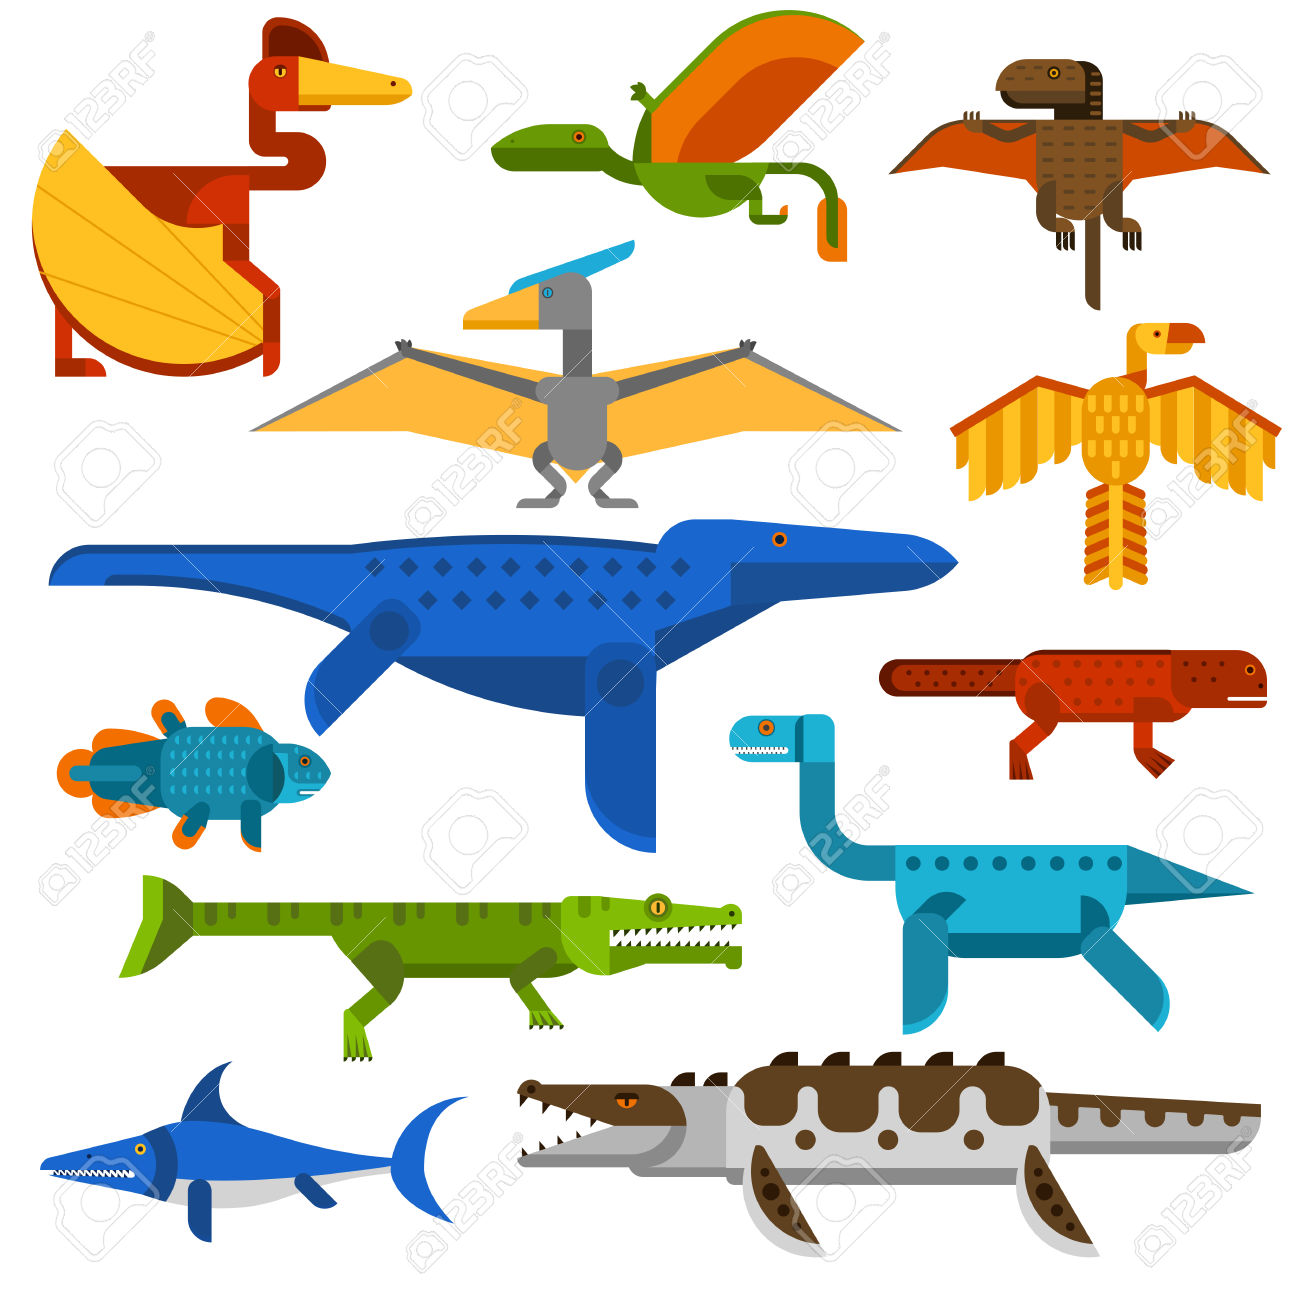 212 Flight Primeval Cliparts, Stock Vector And Royalty Free Flight.